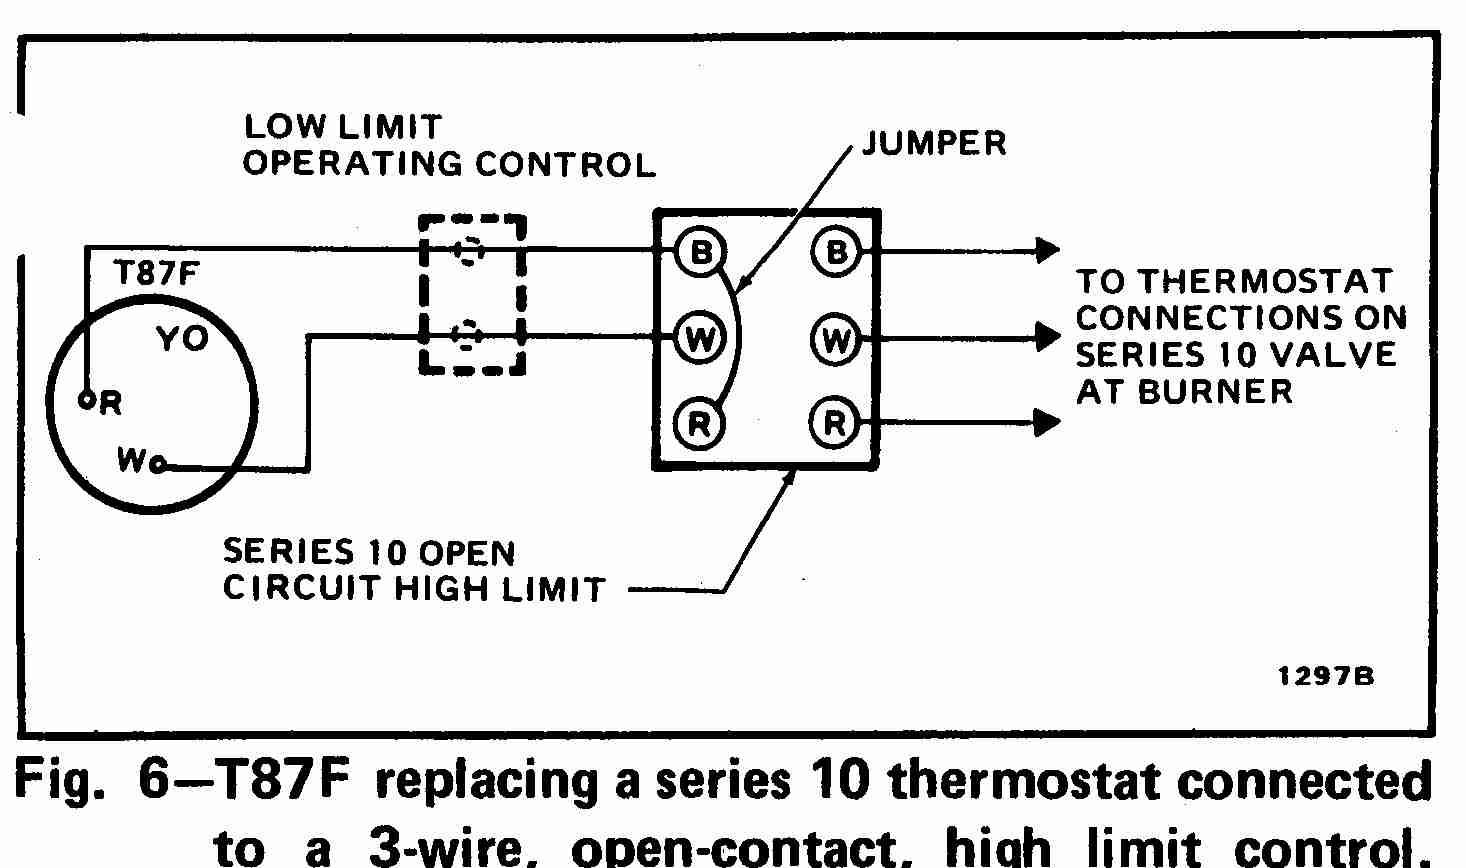 2wire thermostat wiring diagram wiring diagram third level2 wire thermostat wiring diagram wiring diagram third level gas furnace thermostat wiring diagram 2wire thermostat wiring diagram